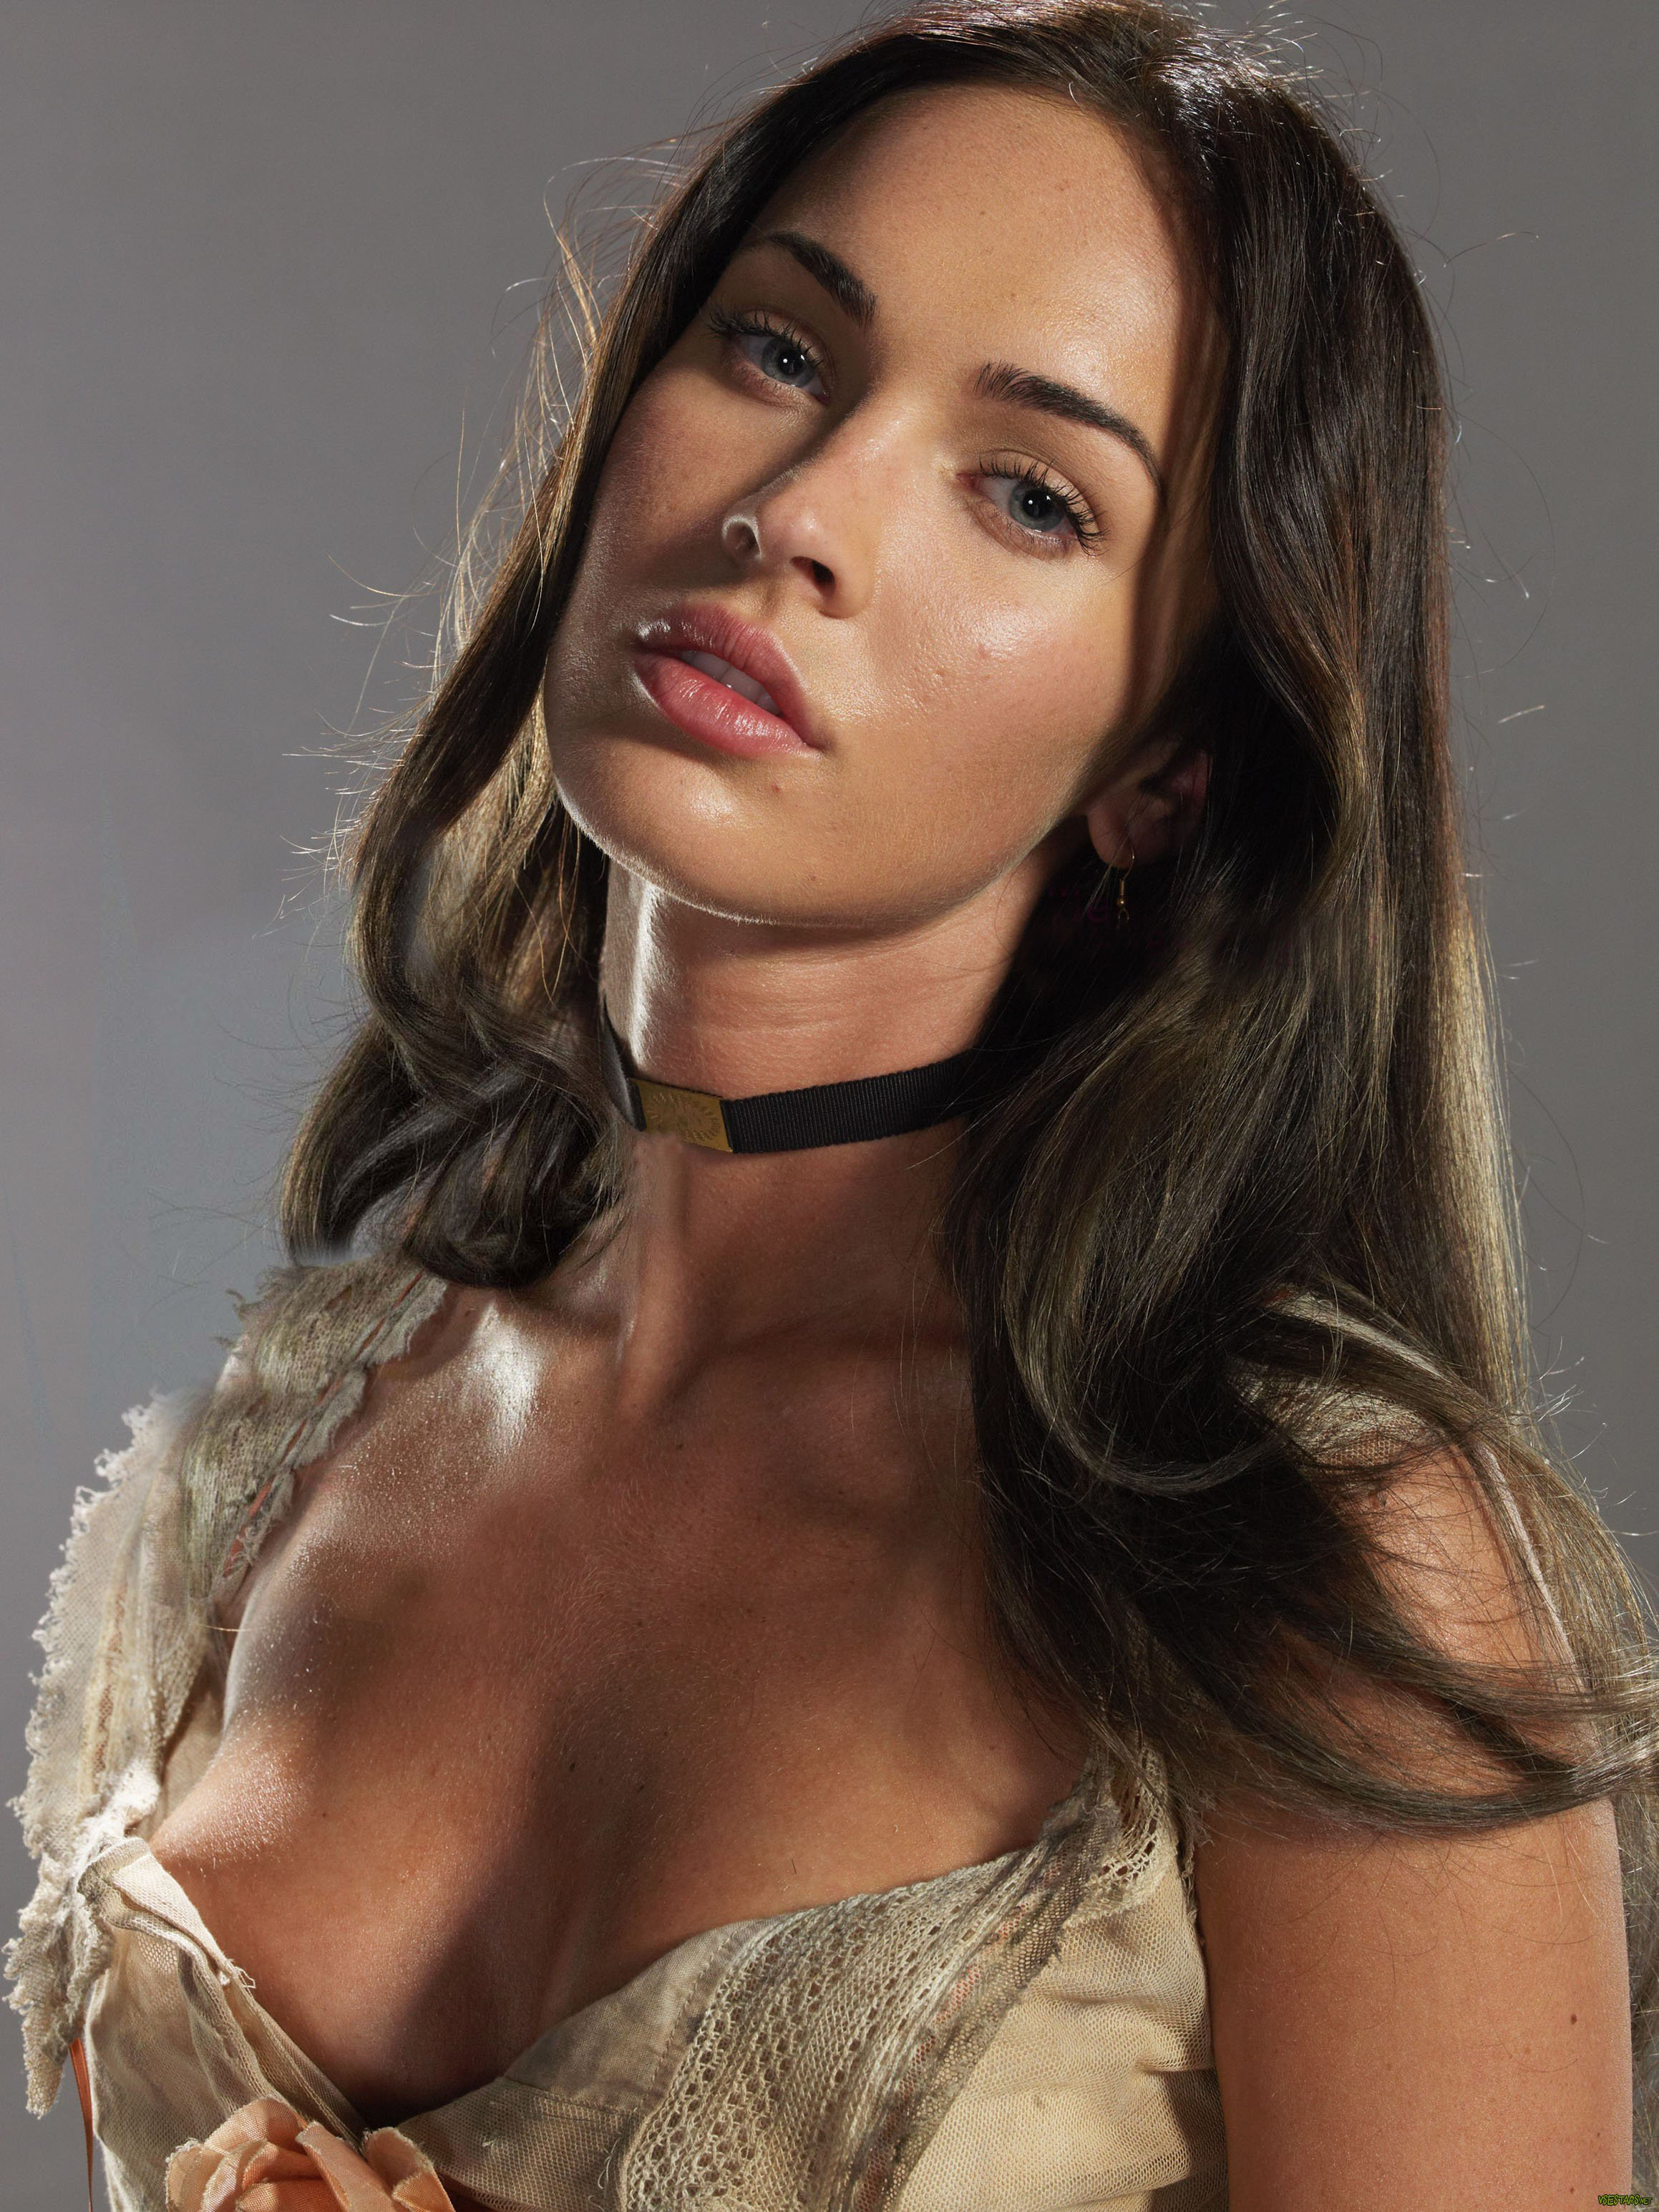 megan-fox-hd-wallpapape | dailyman40